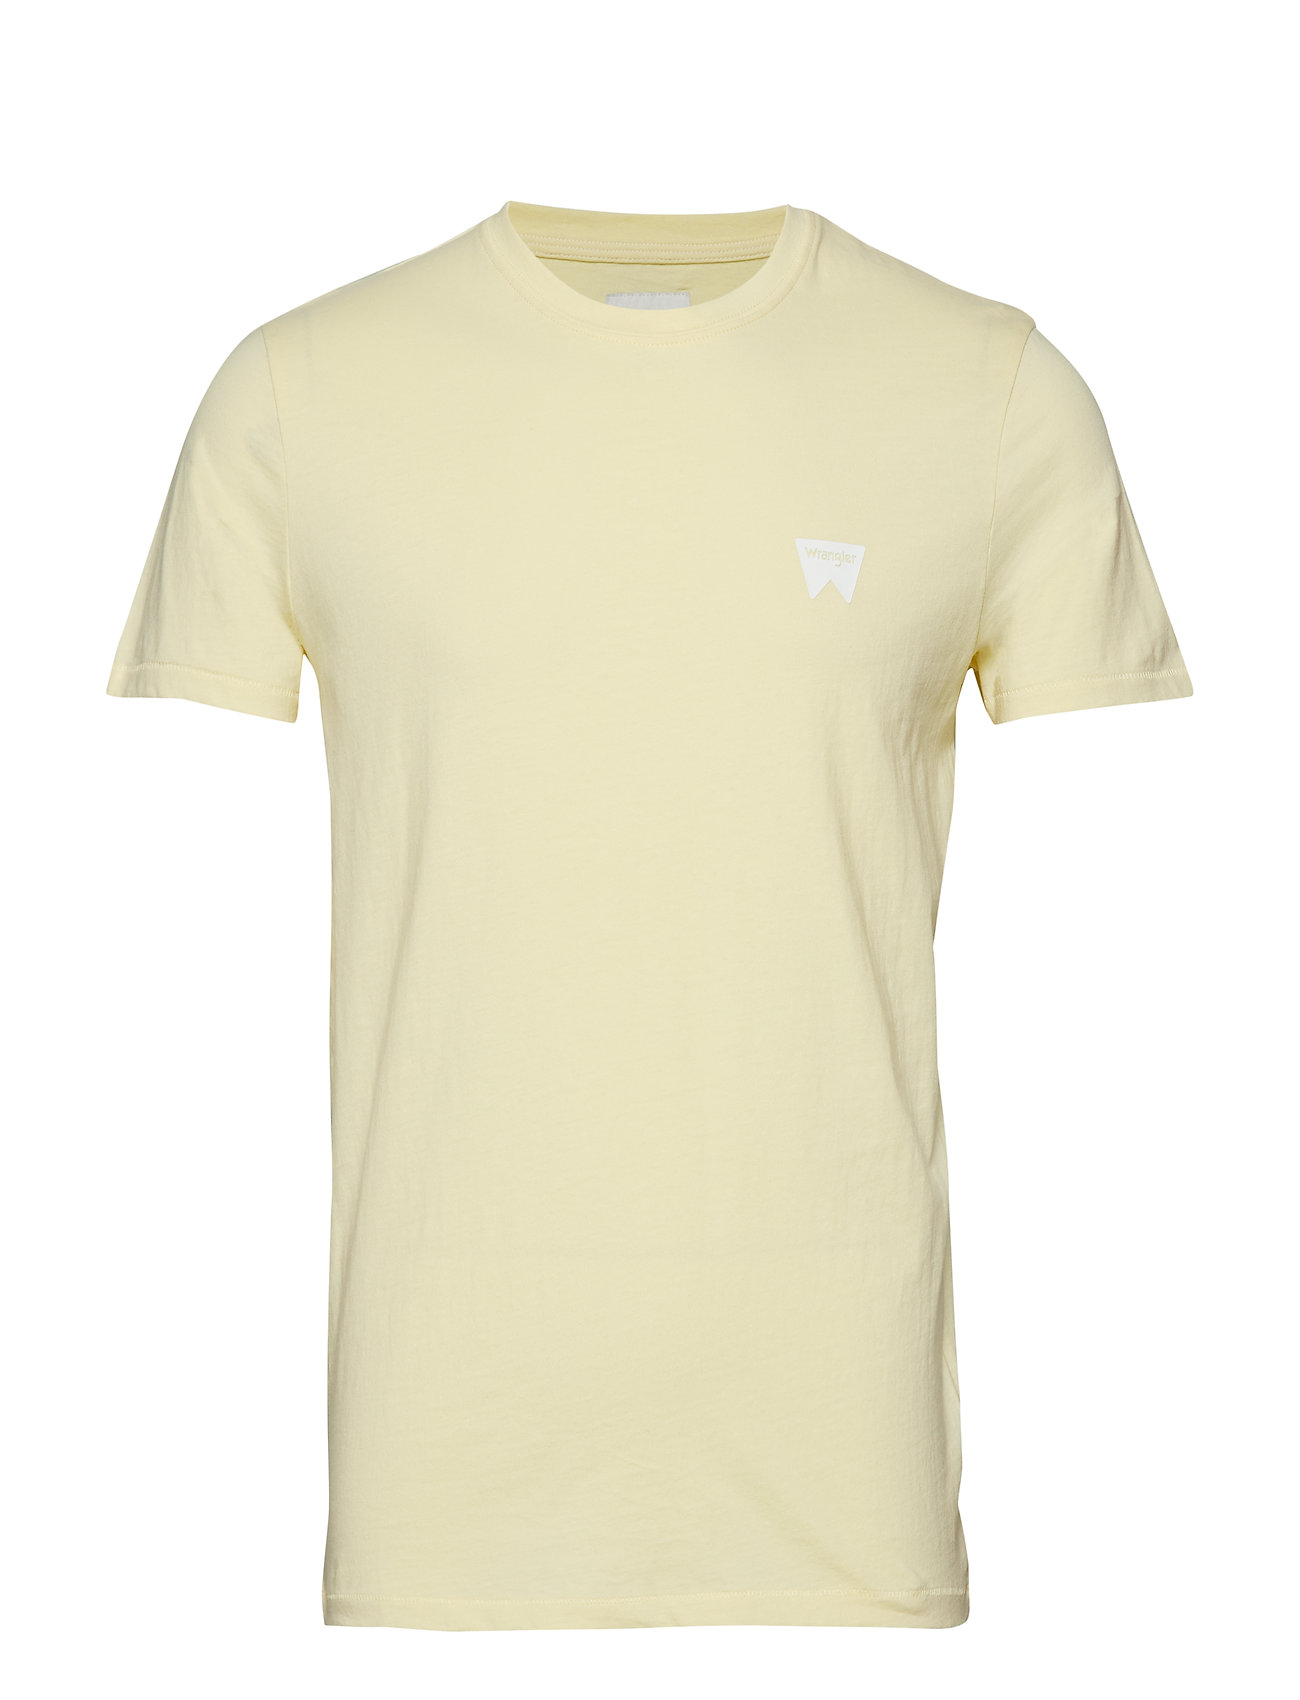 Wrangler SS SIGN OFF TEE - FRENCH VANILLA